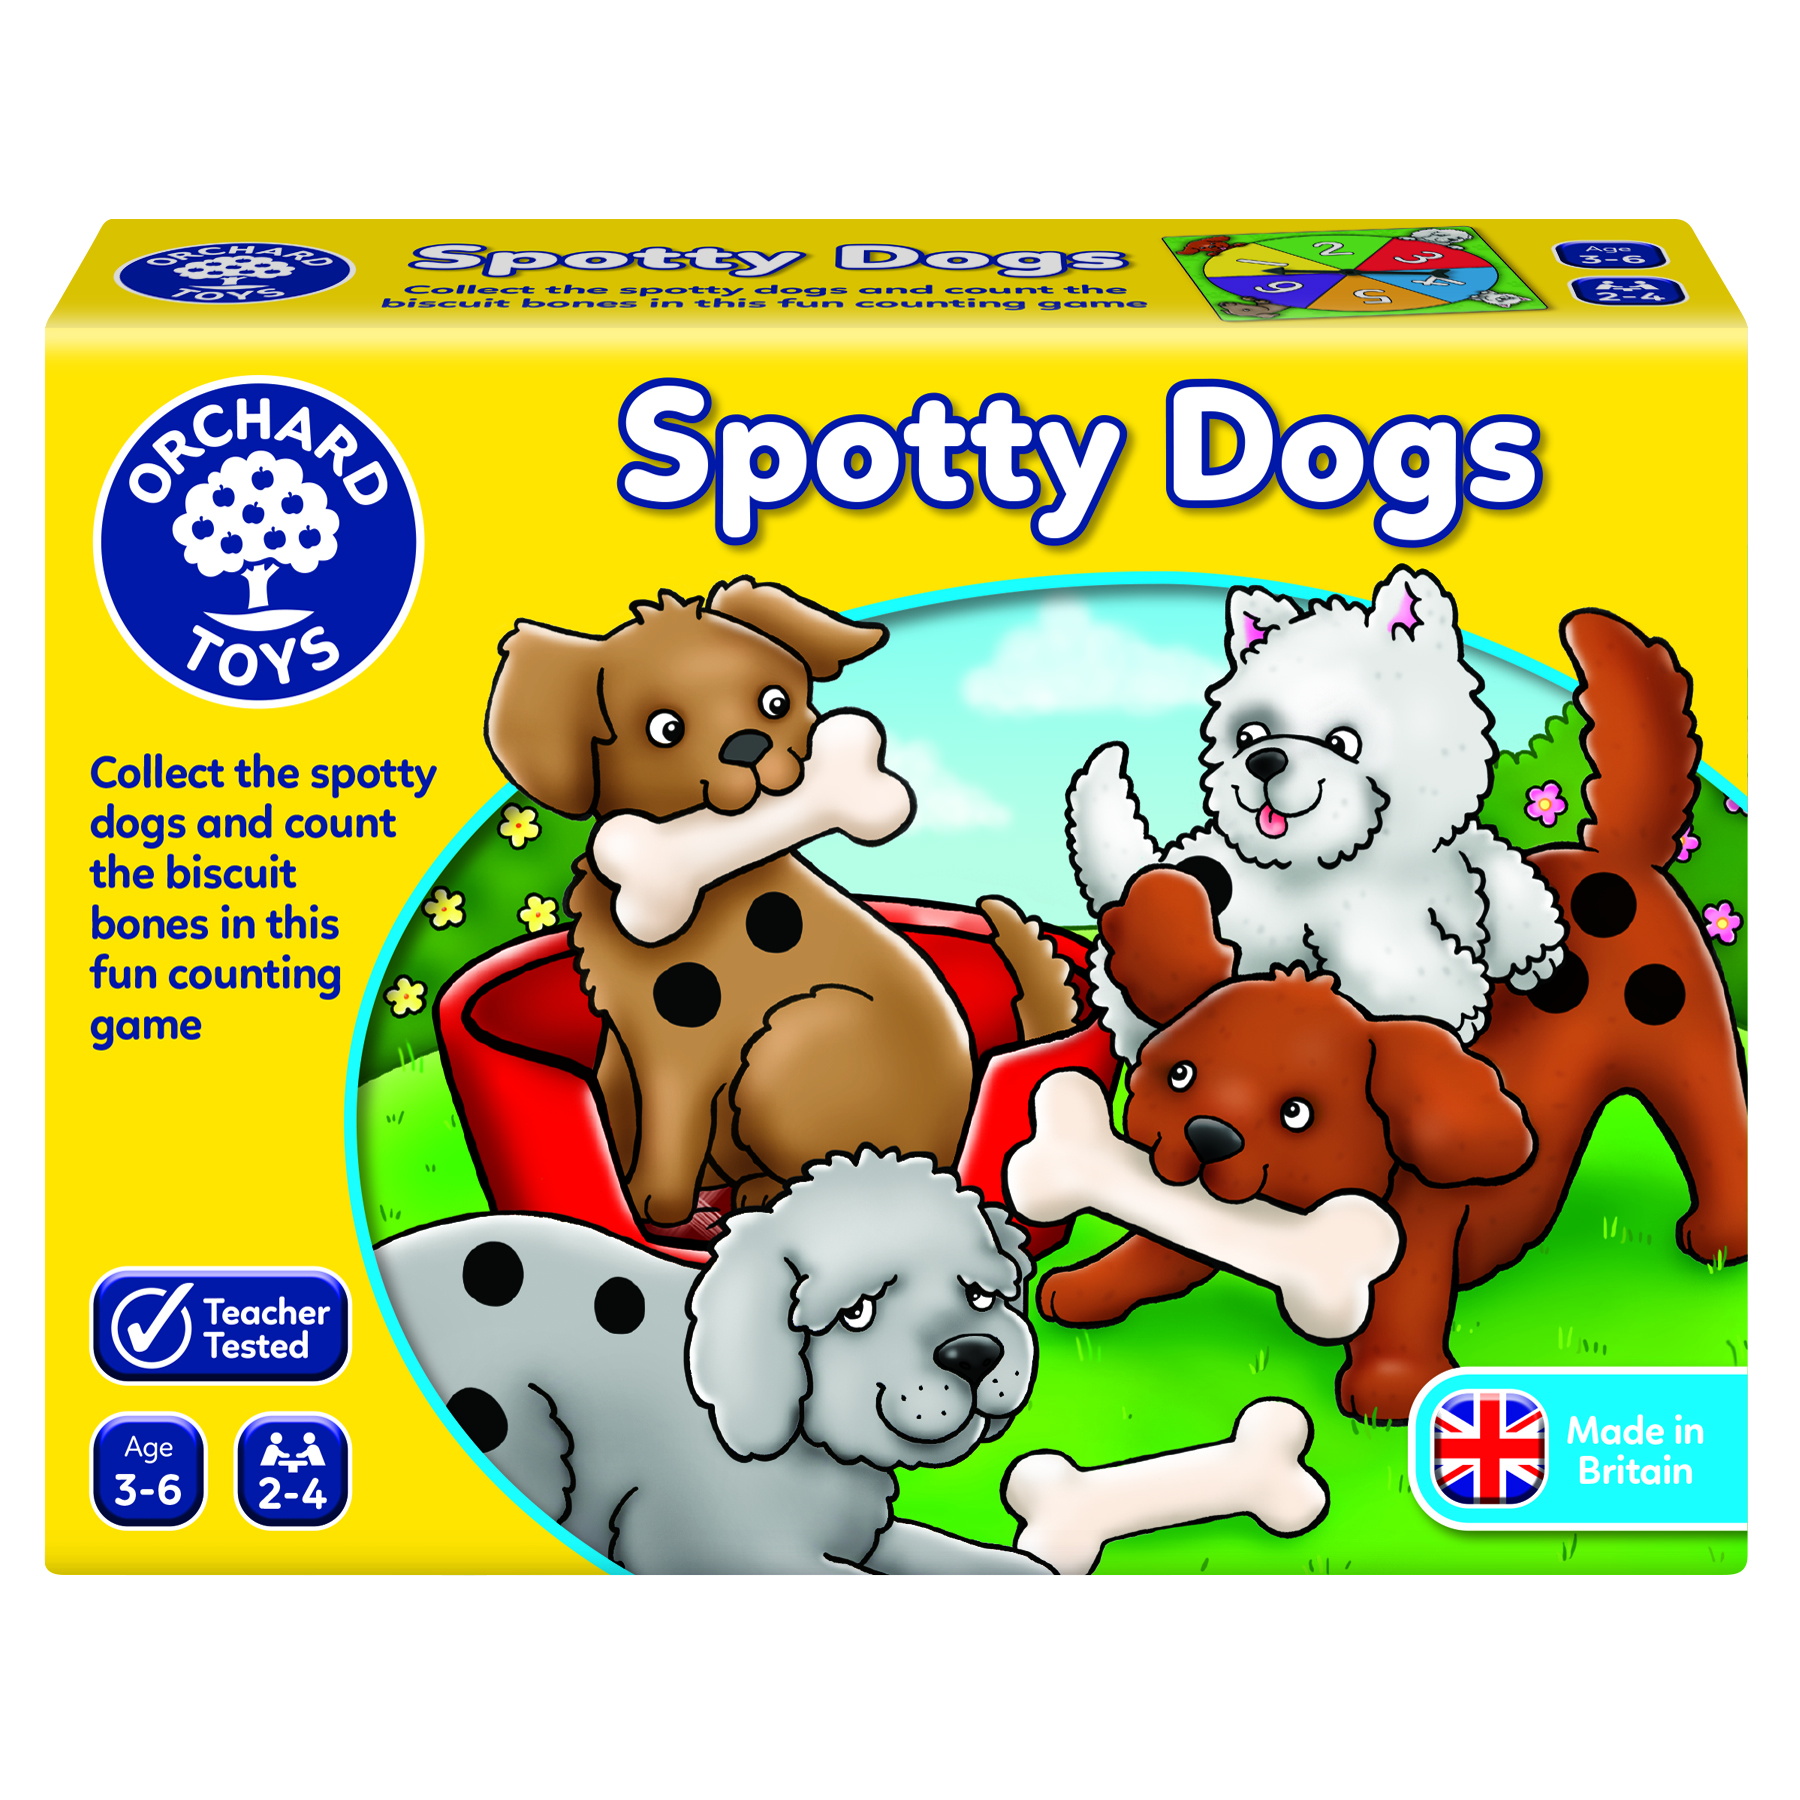 Spotty Dogs Game by Orchard toys  3+